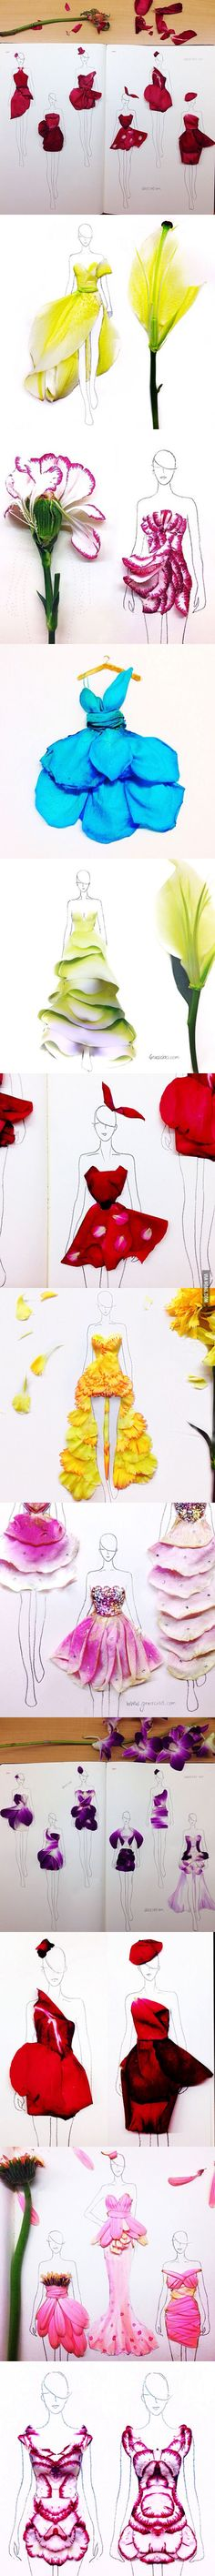 Fashion Illustrations With Real Flower Petals As Clothing.